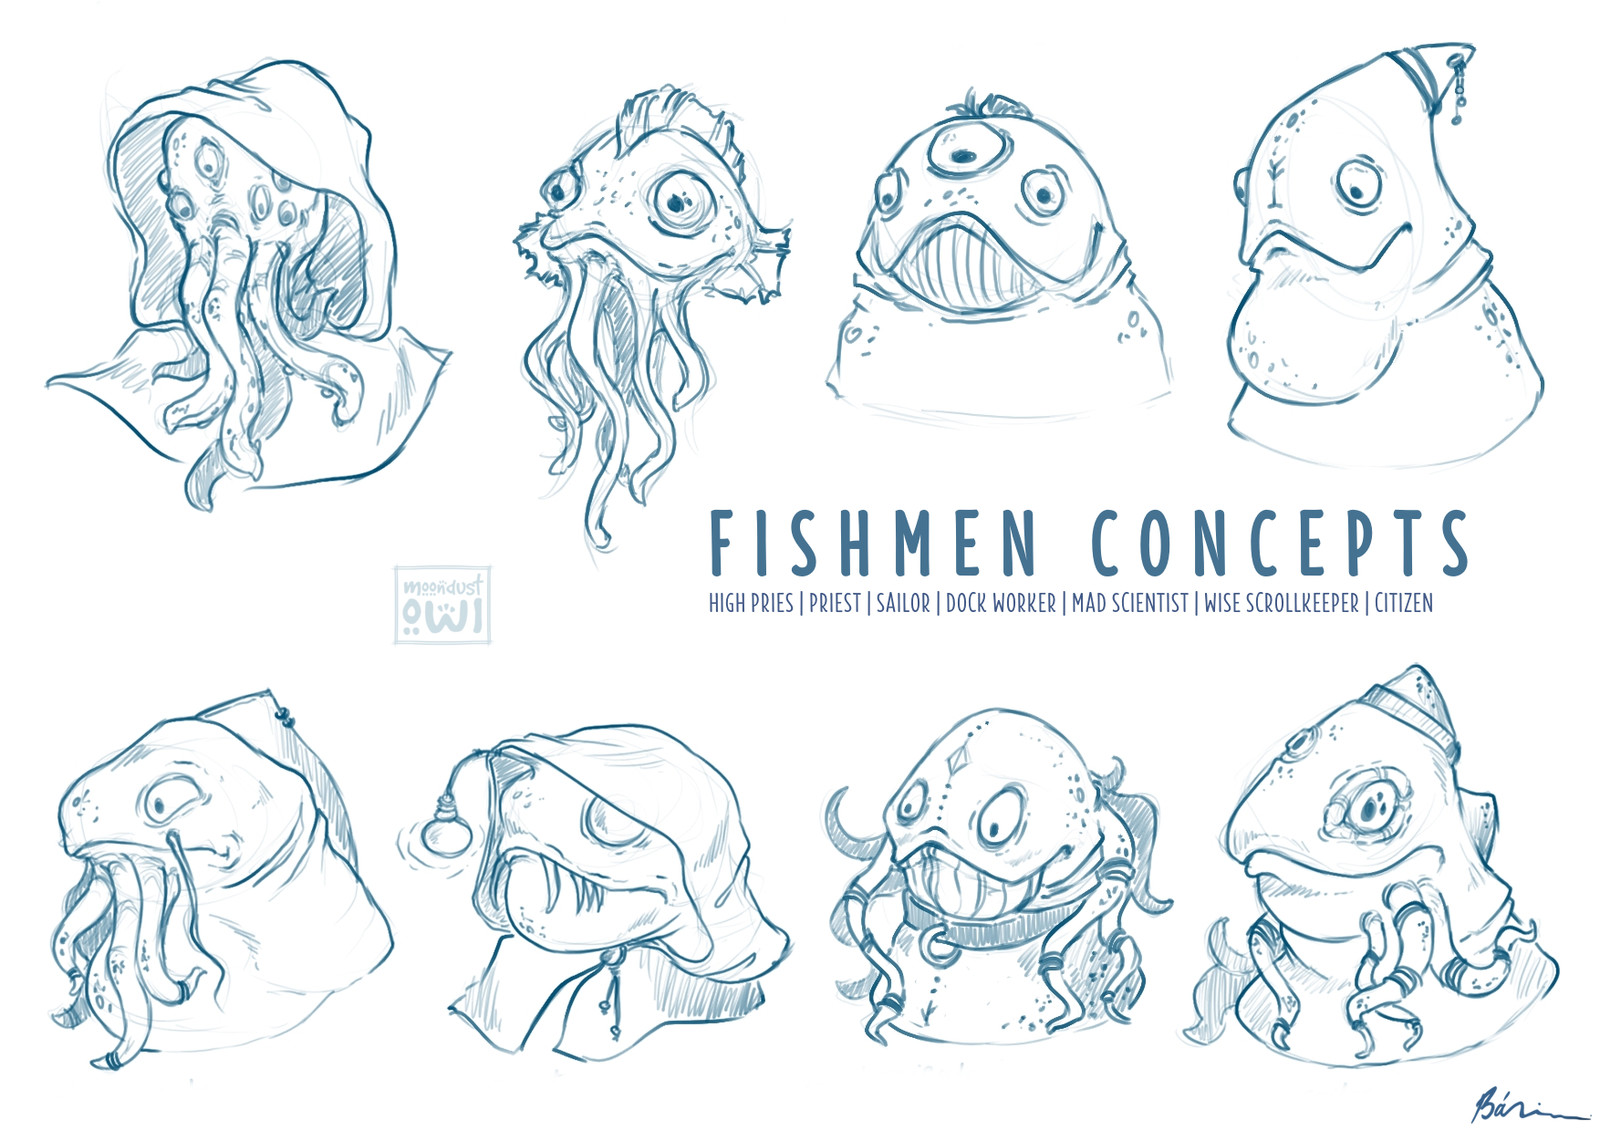 Fishmen concepts (heads) : citizens | priest & high priest | wise scrollkeeper | sailor | dock worker | mad scientist | city guard ...